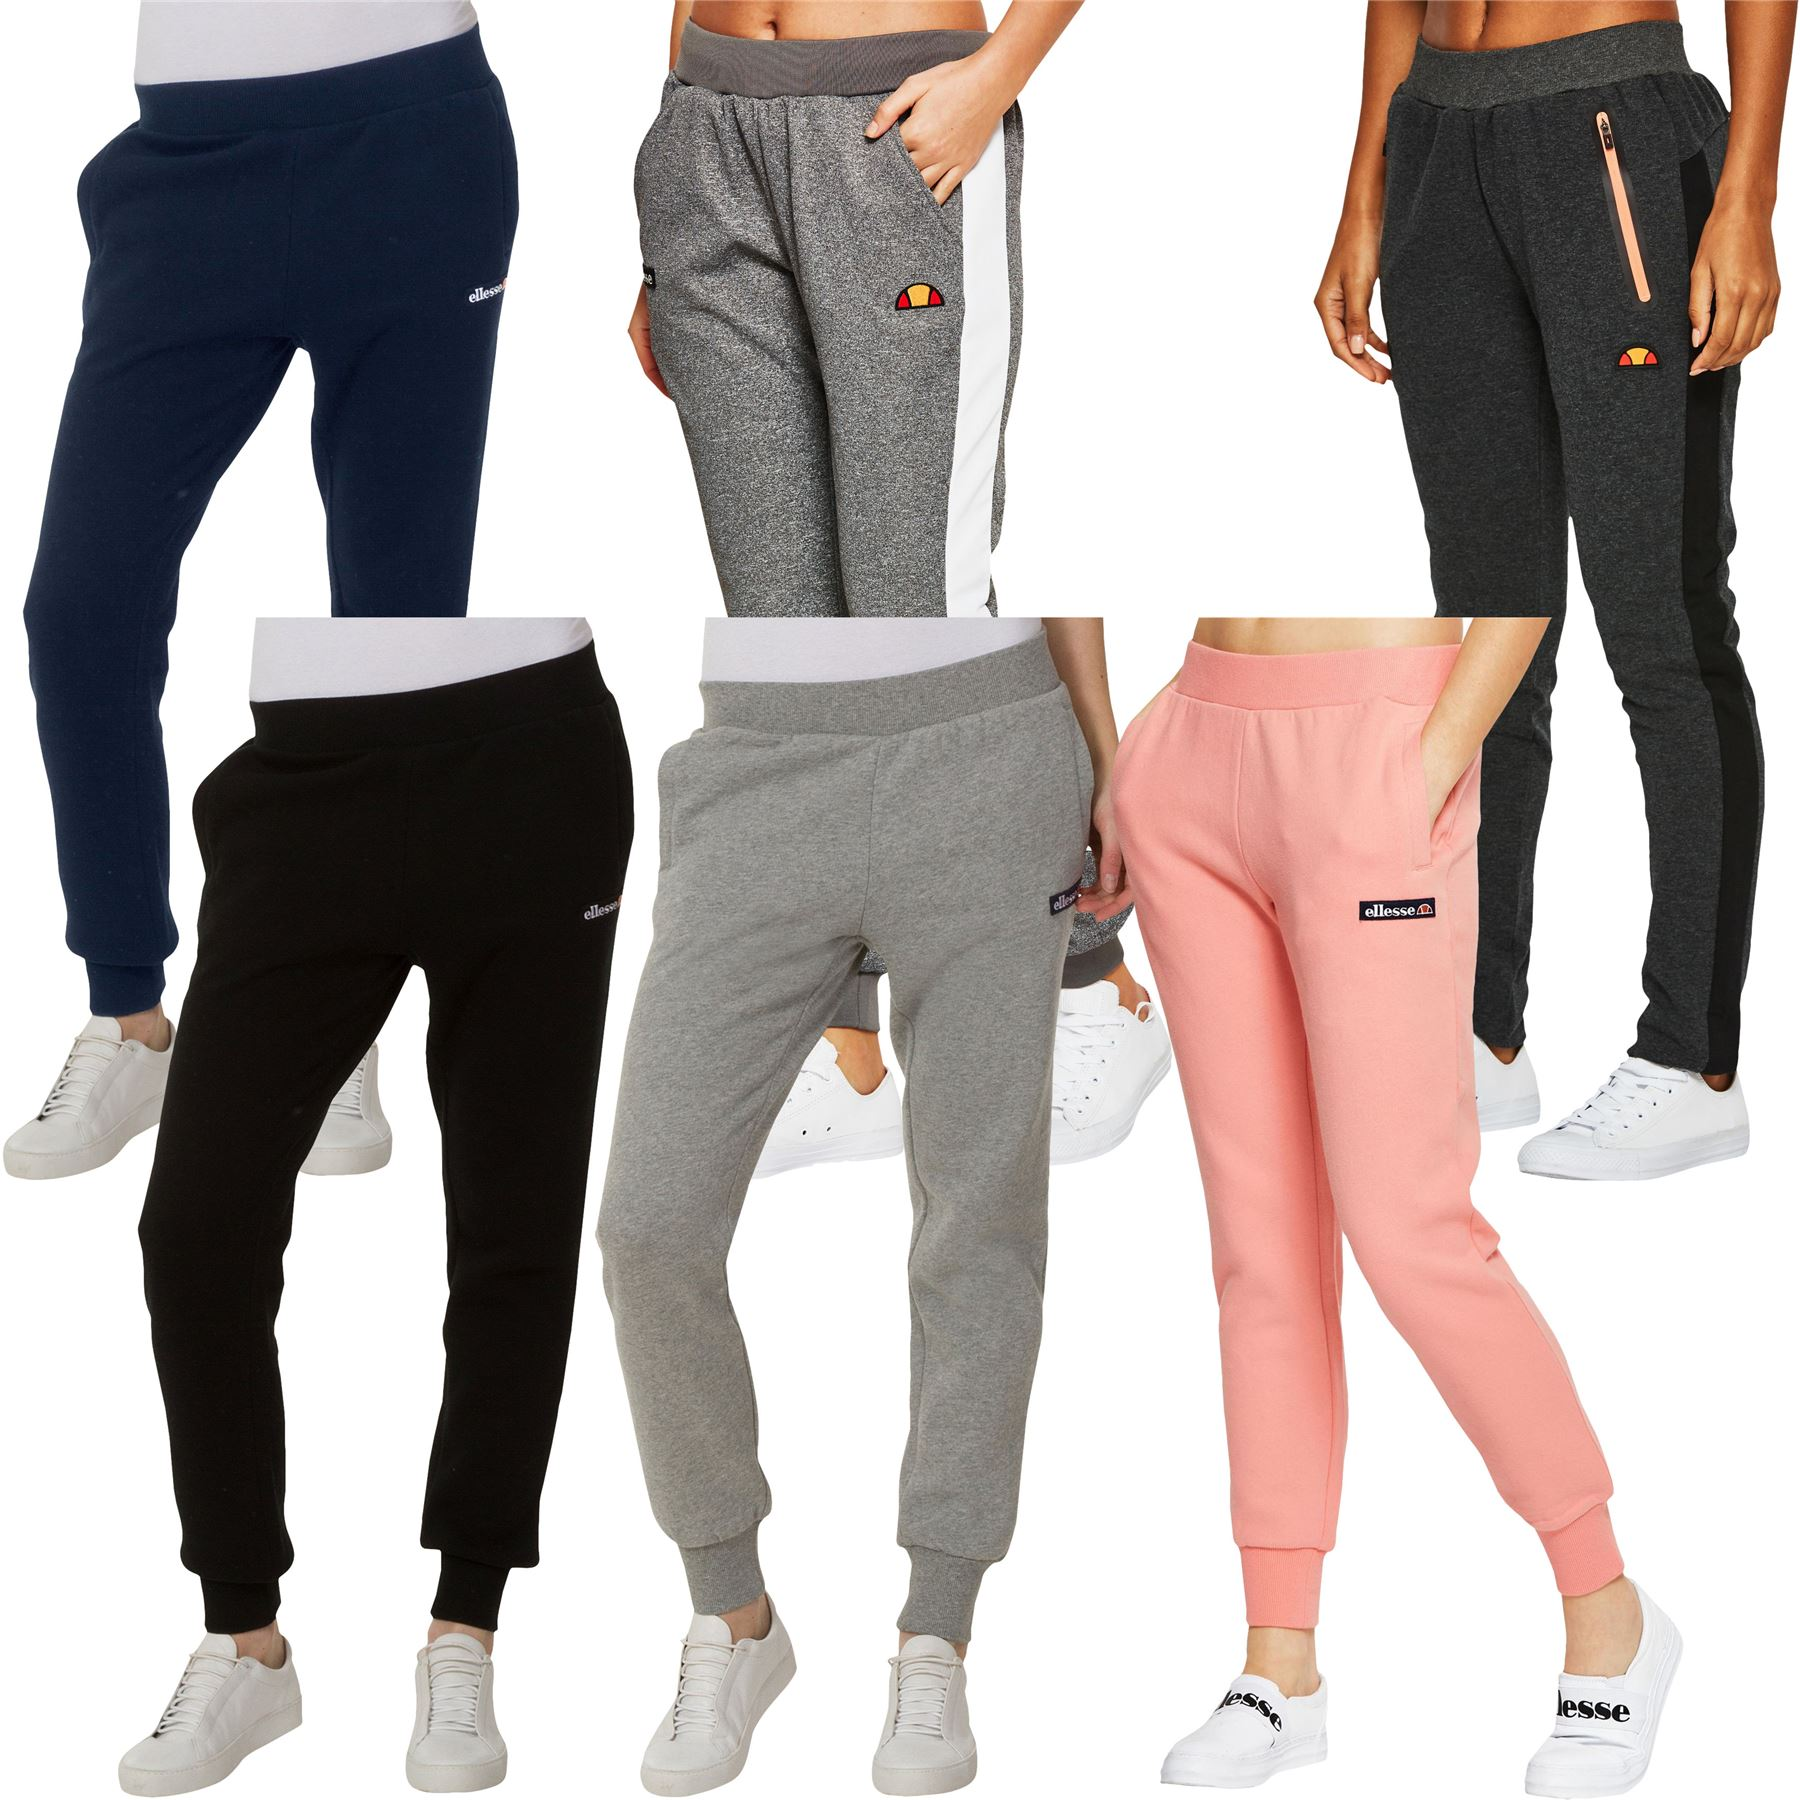 6985cfeb Details about Ellesse Jogger Bottoms Women's Sweat Pants Assorted Styles